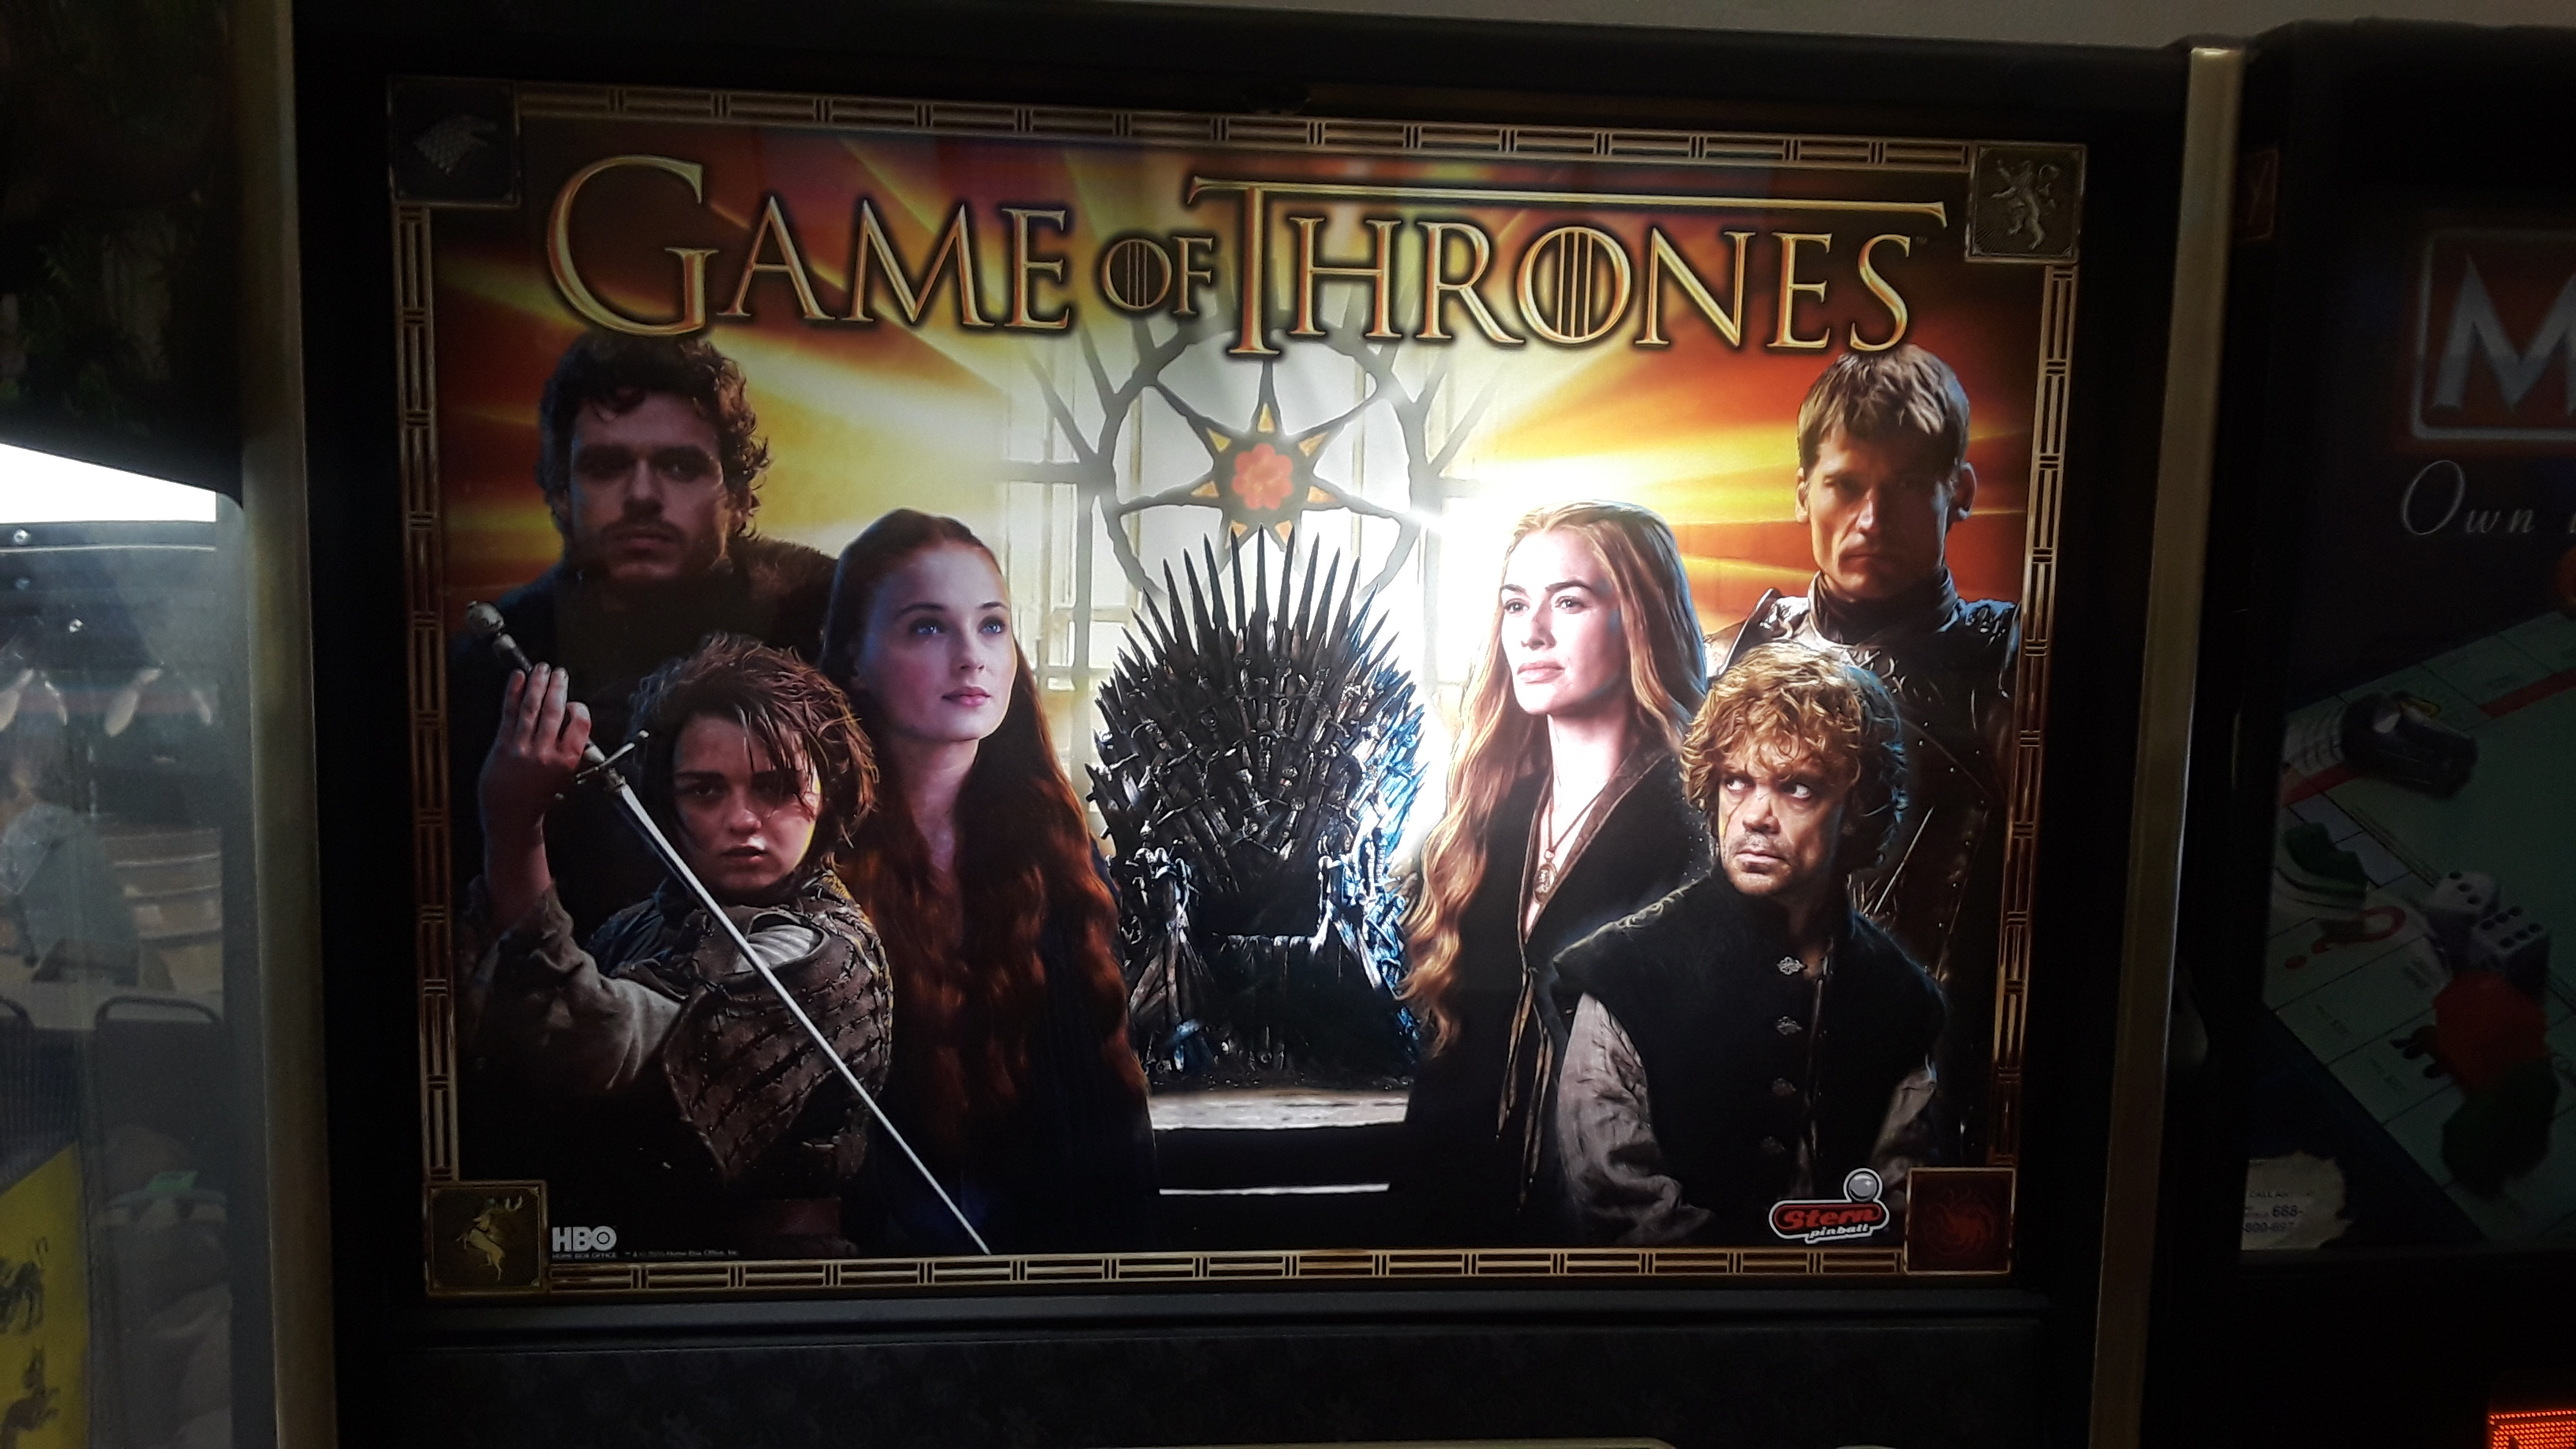 JML101582: Game Of Thrones (Pinball: 3 Balls) 22,136,080 points on 2020-02-21 15:32:22